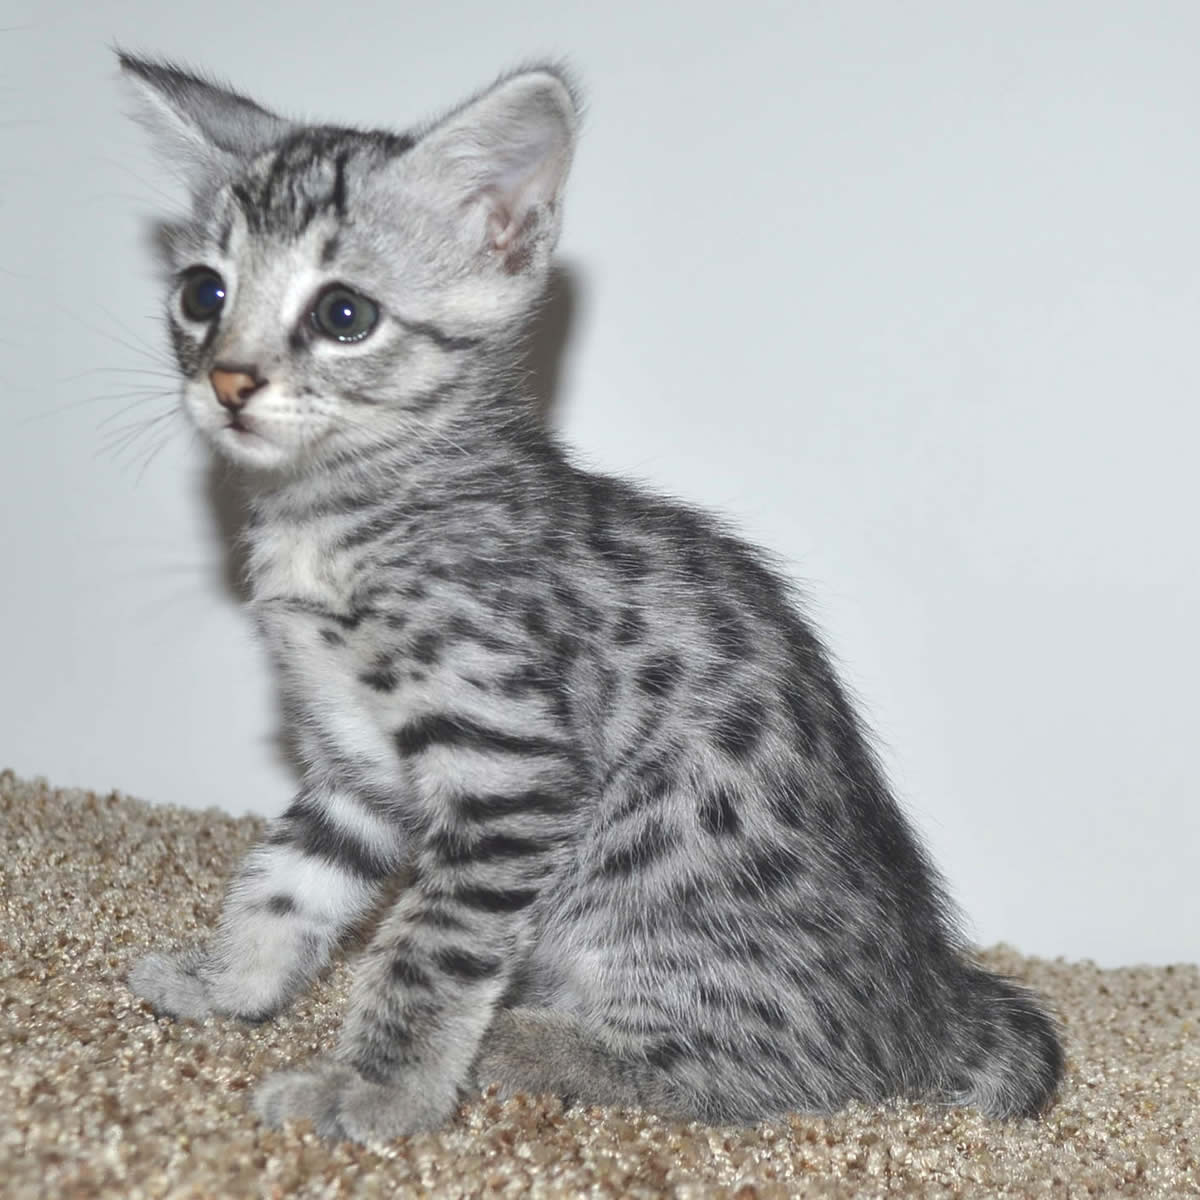 f2-savannah-kittens-tb0901d